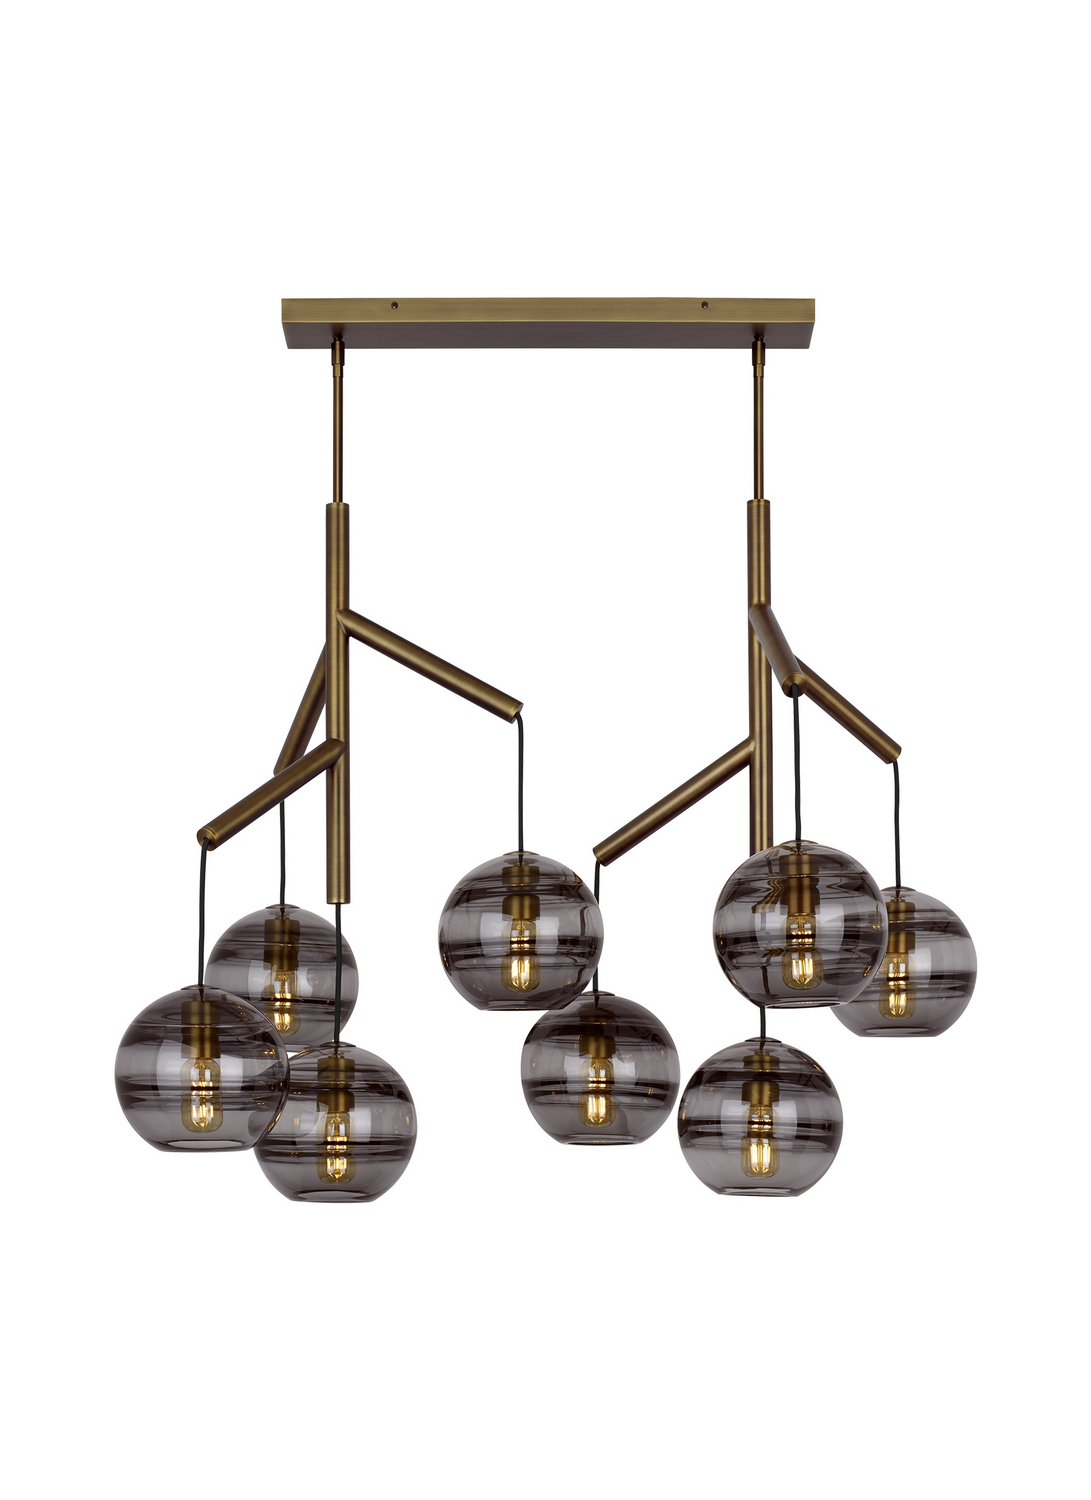 Chandelier from the Sedona collection by Tech Lighting 700SDNMPL2KR